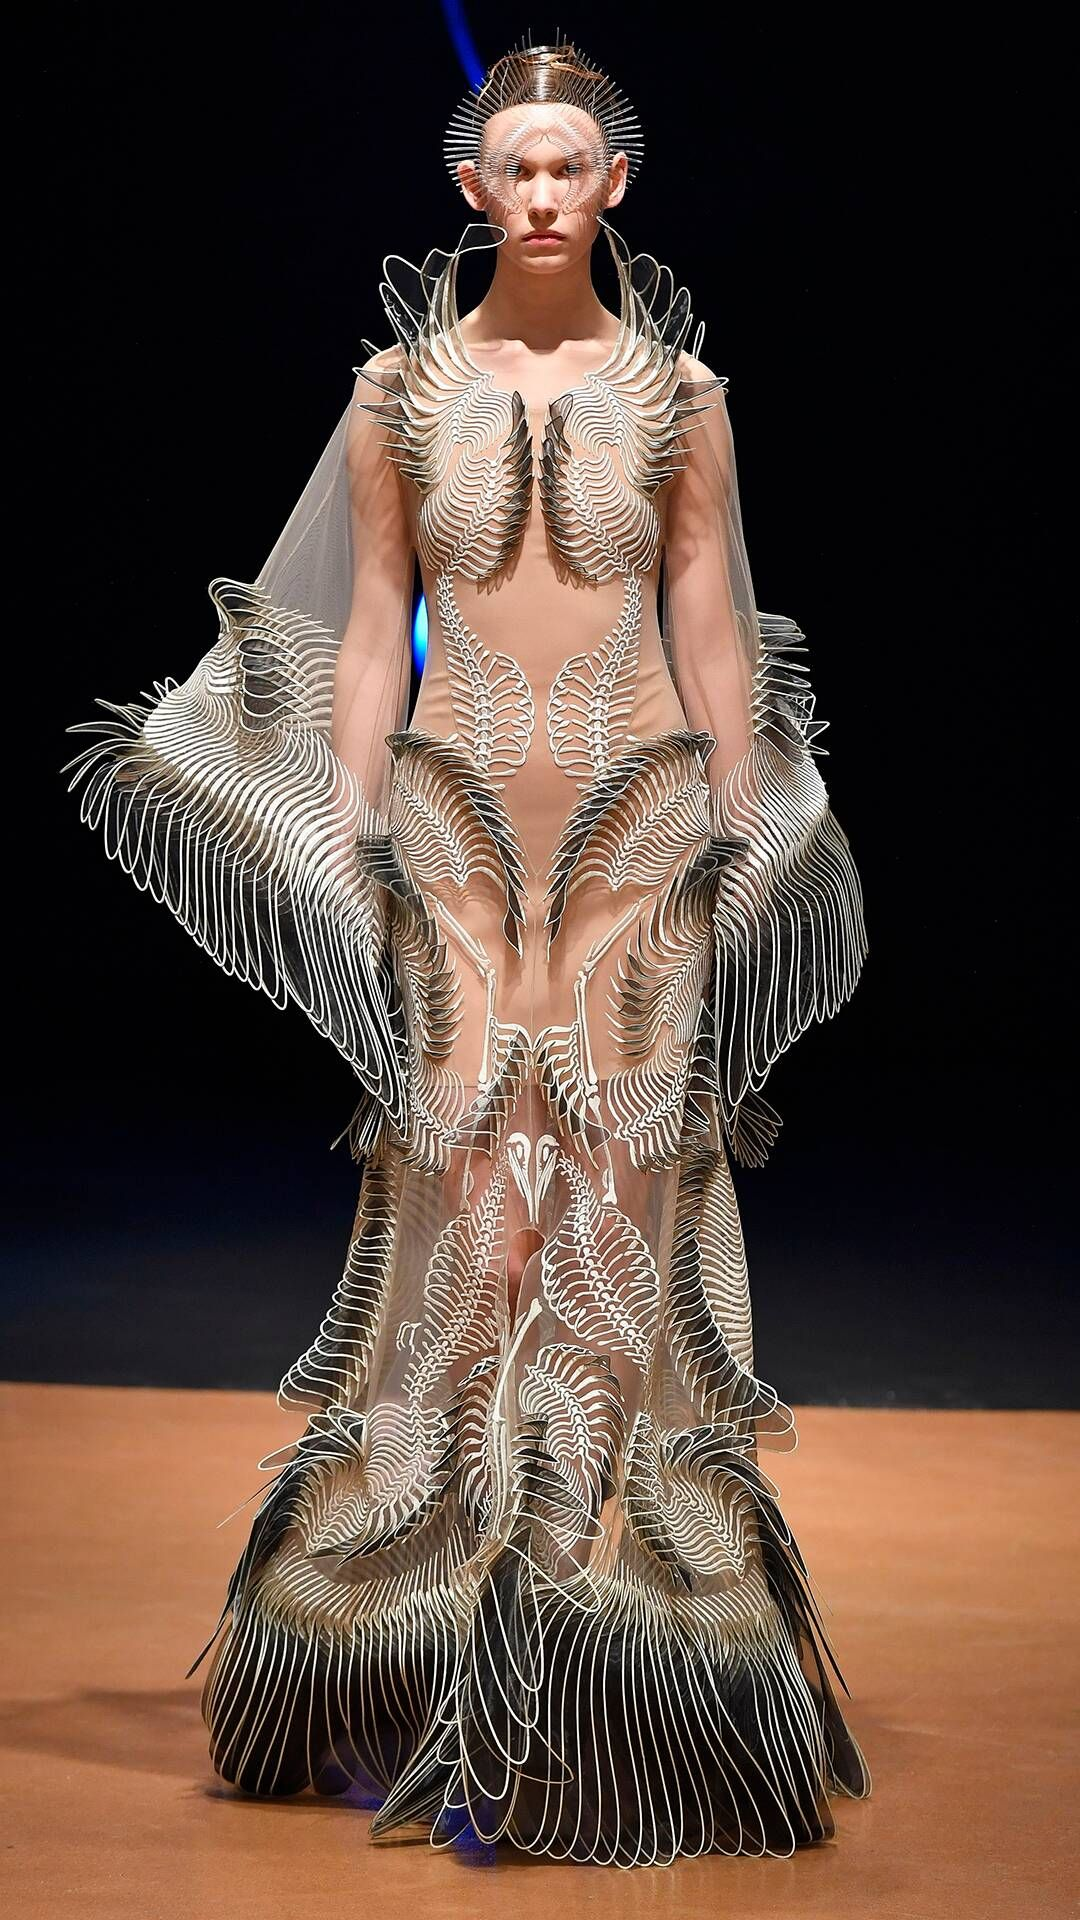 Photo of Iris Van Herpen from Best Fashion Looks at Fall 2020 Fashion Week